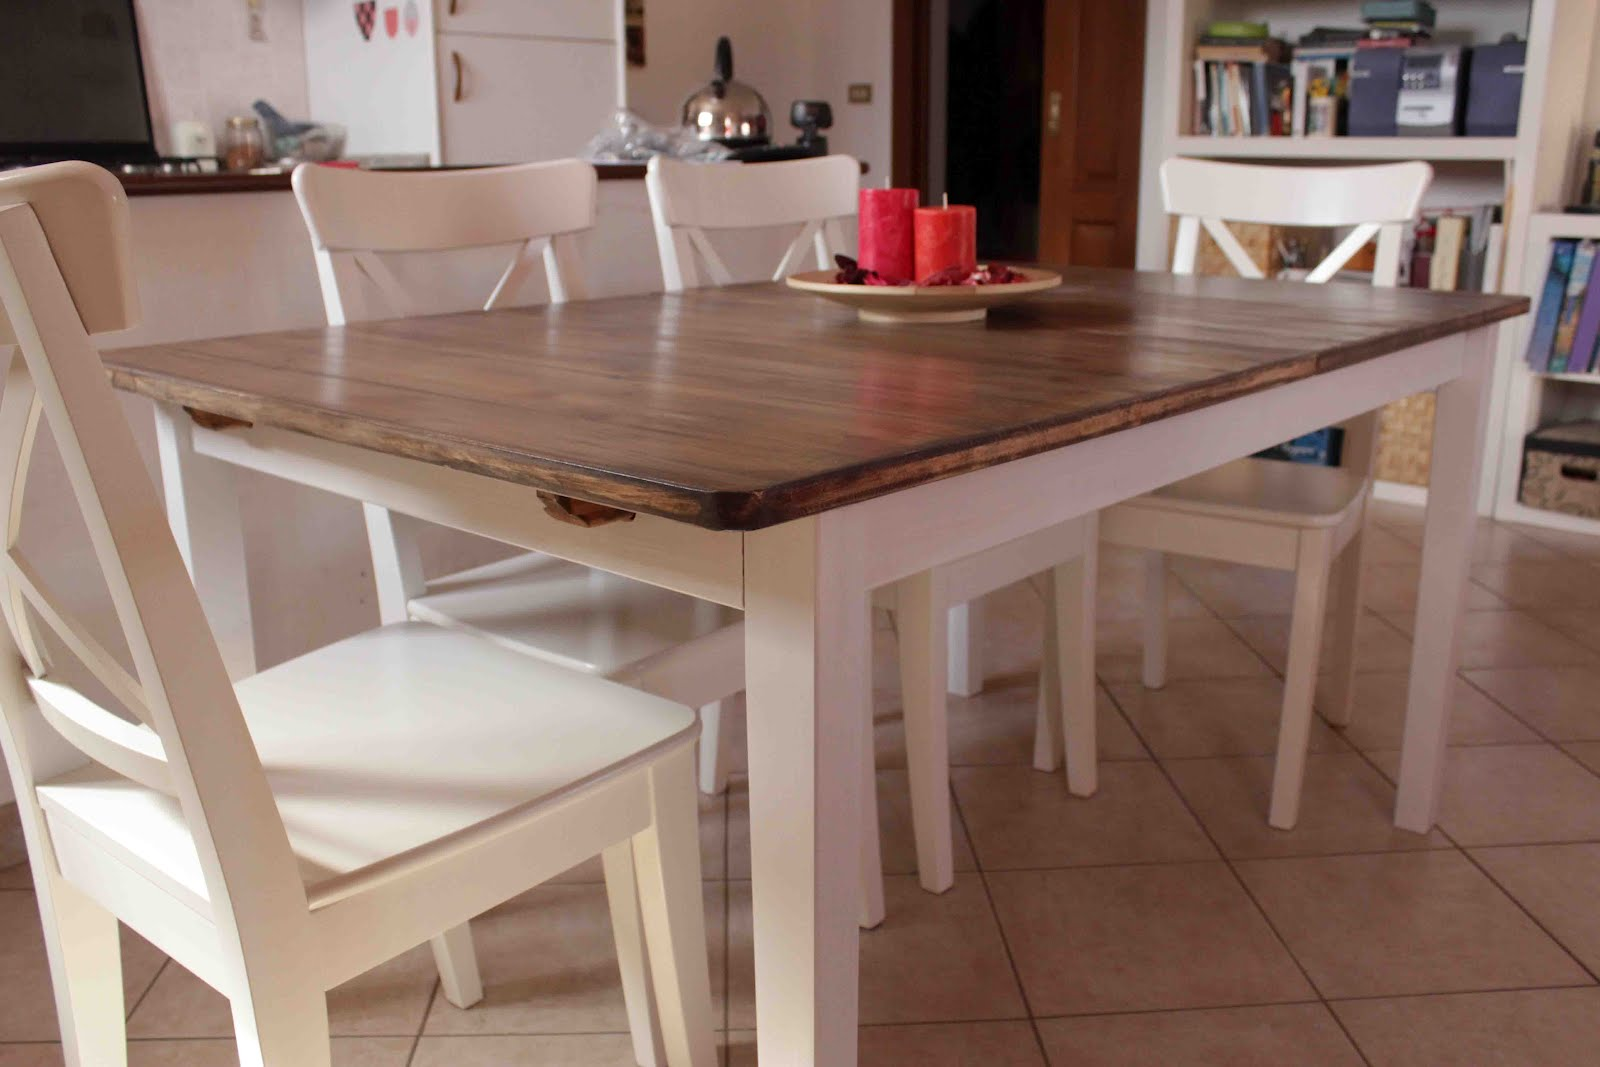 country kitchen style dining table ikea hackers ikea hackers